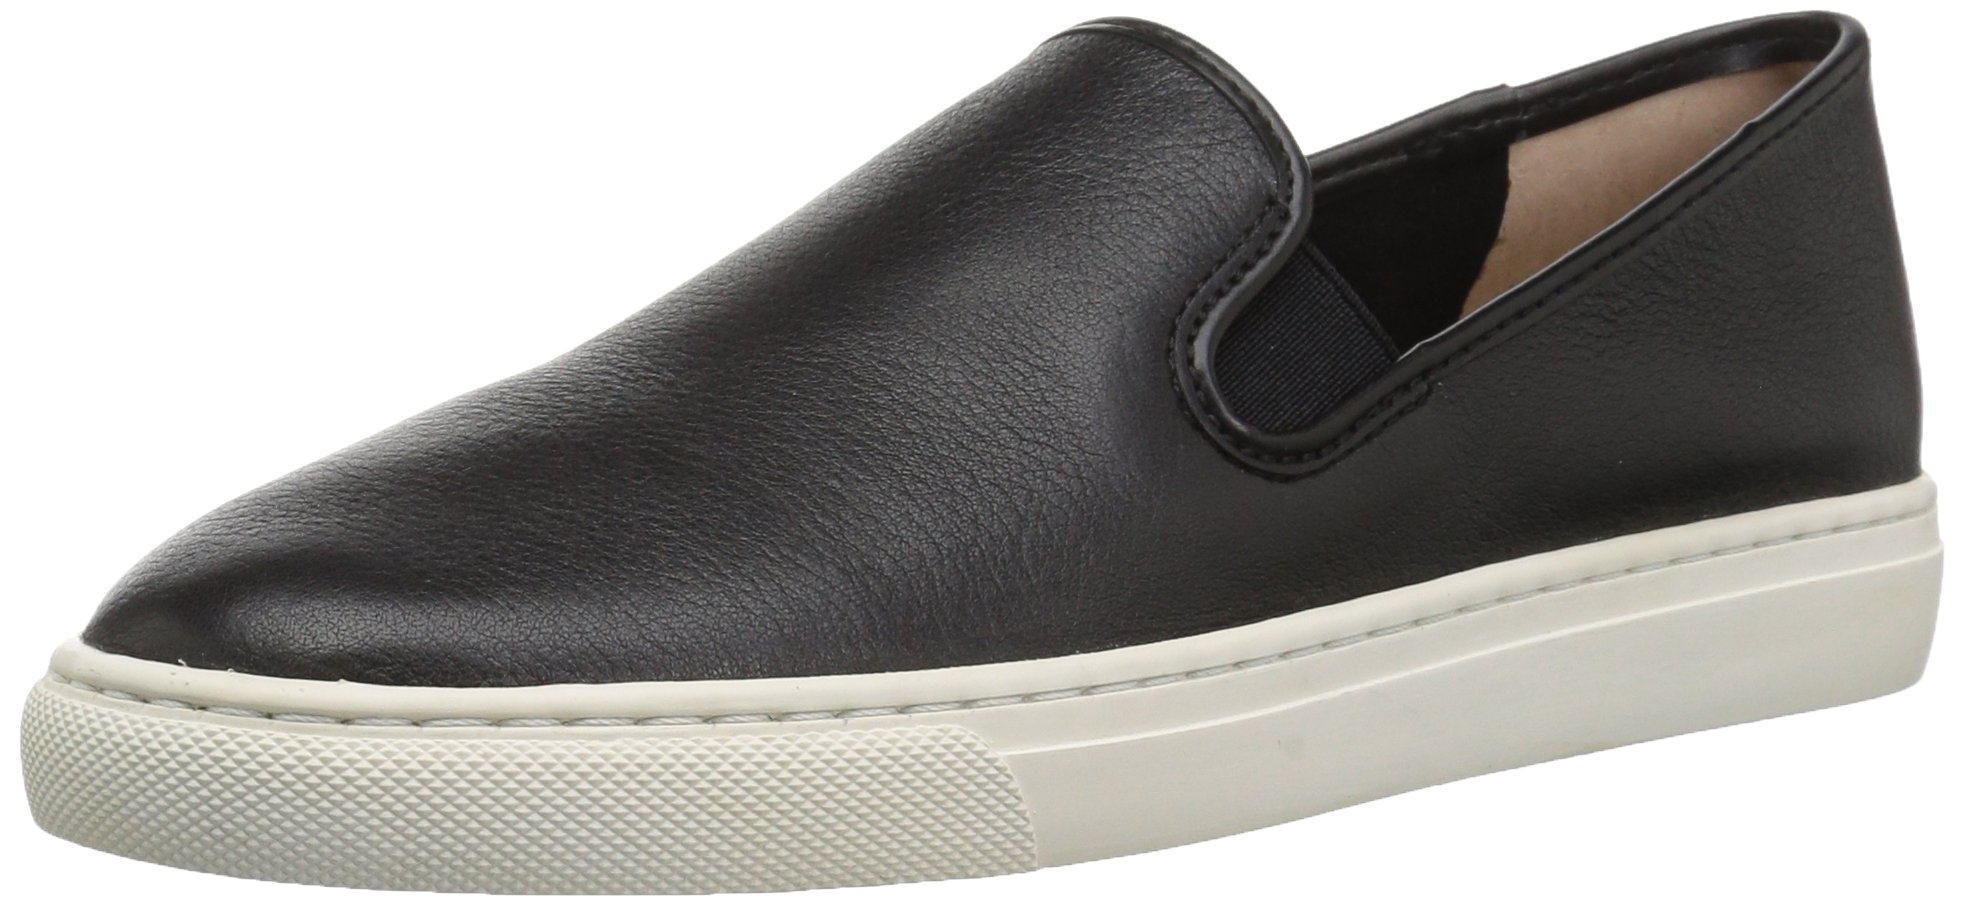 206 Collective Women's Cooper Perforated Slip-on Fashion Sneaker, Black Leather, 7 B US